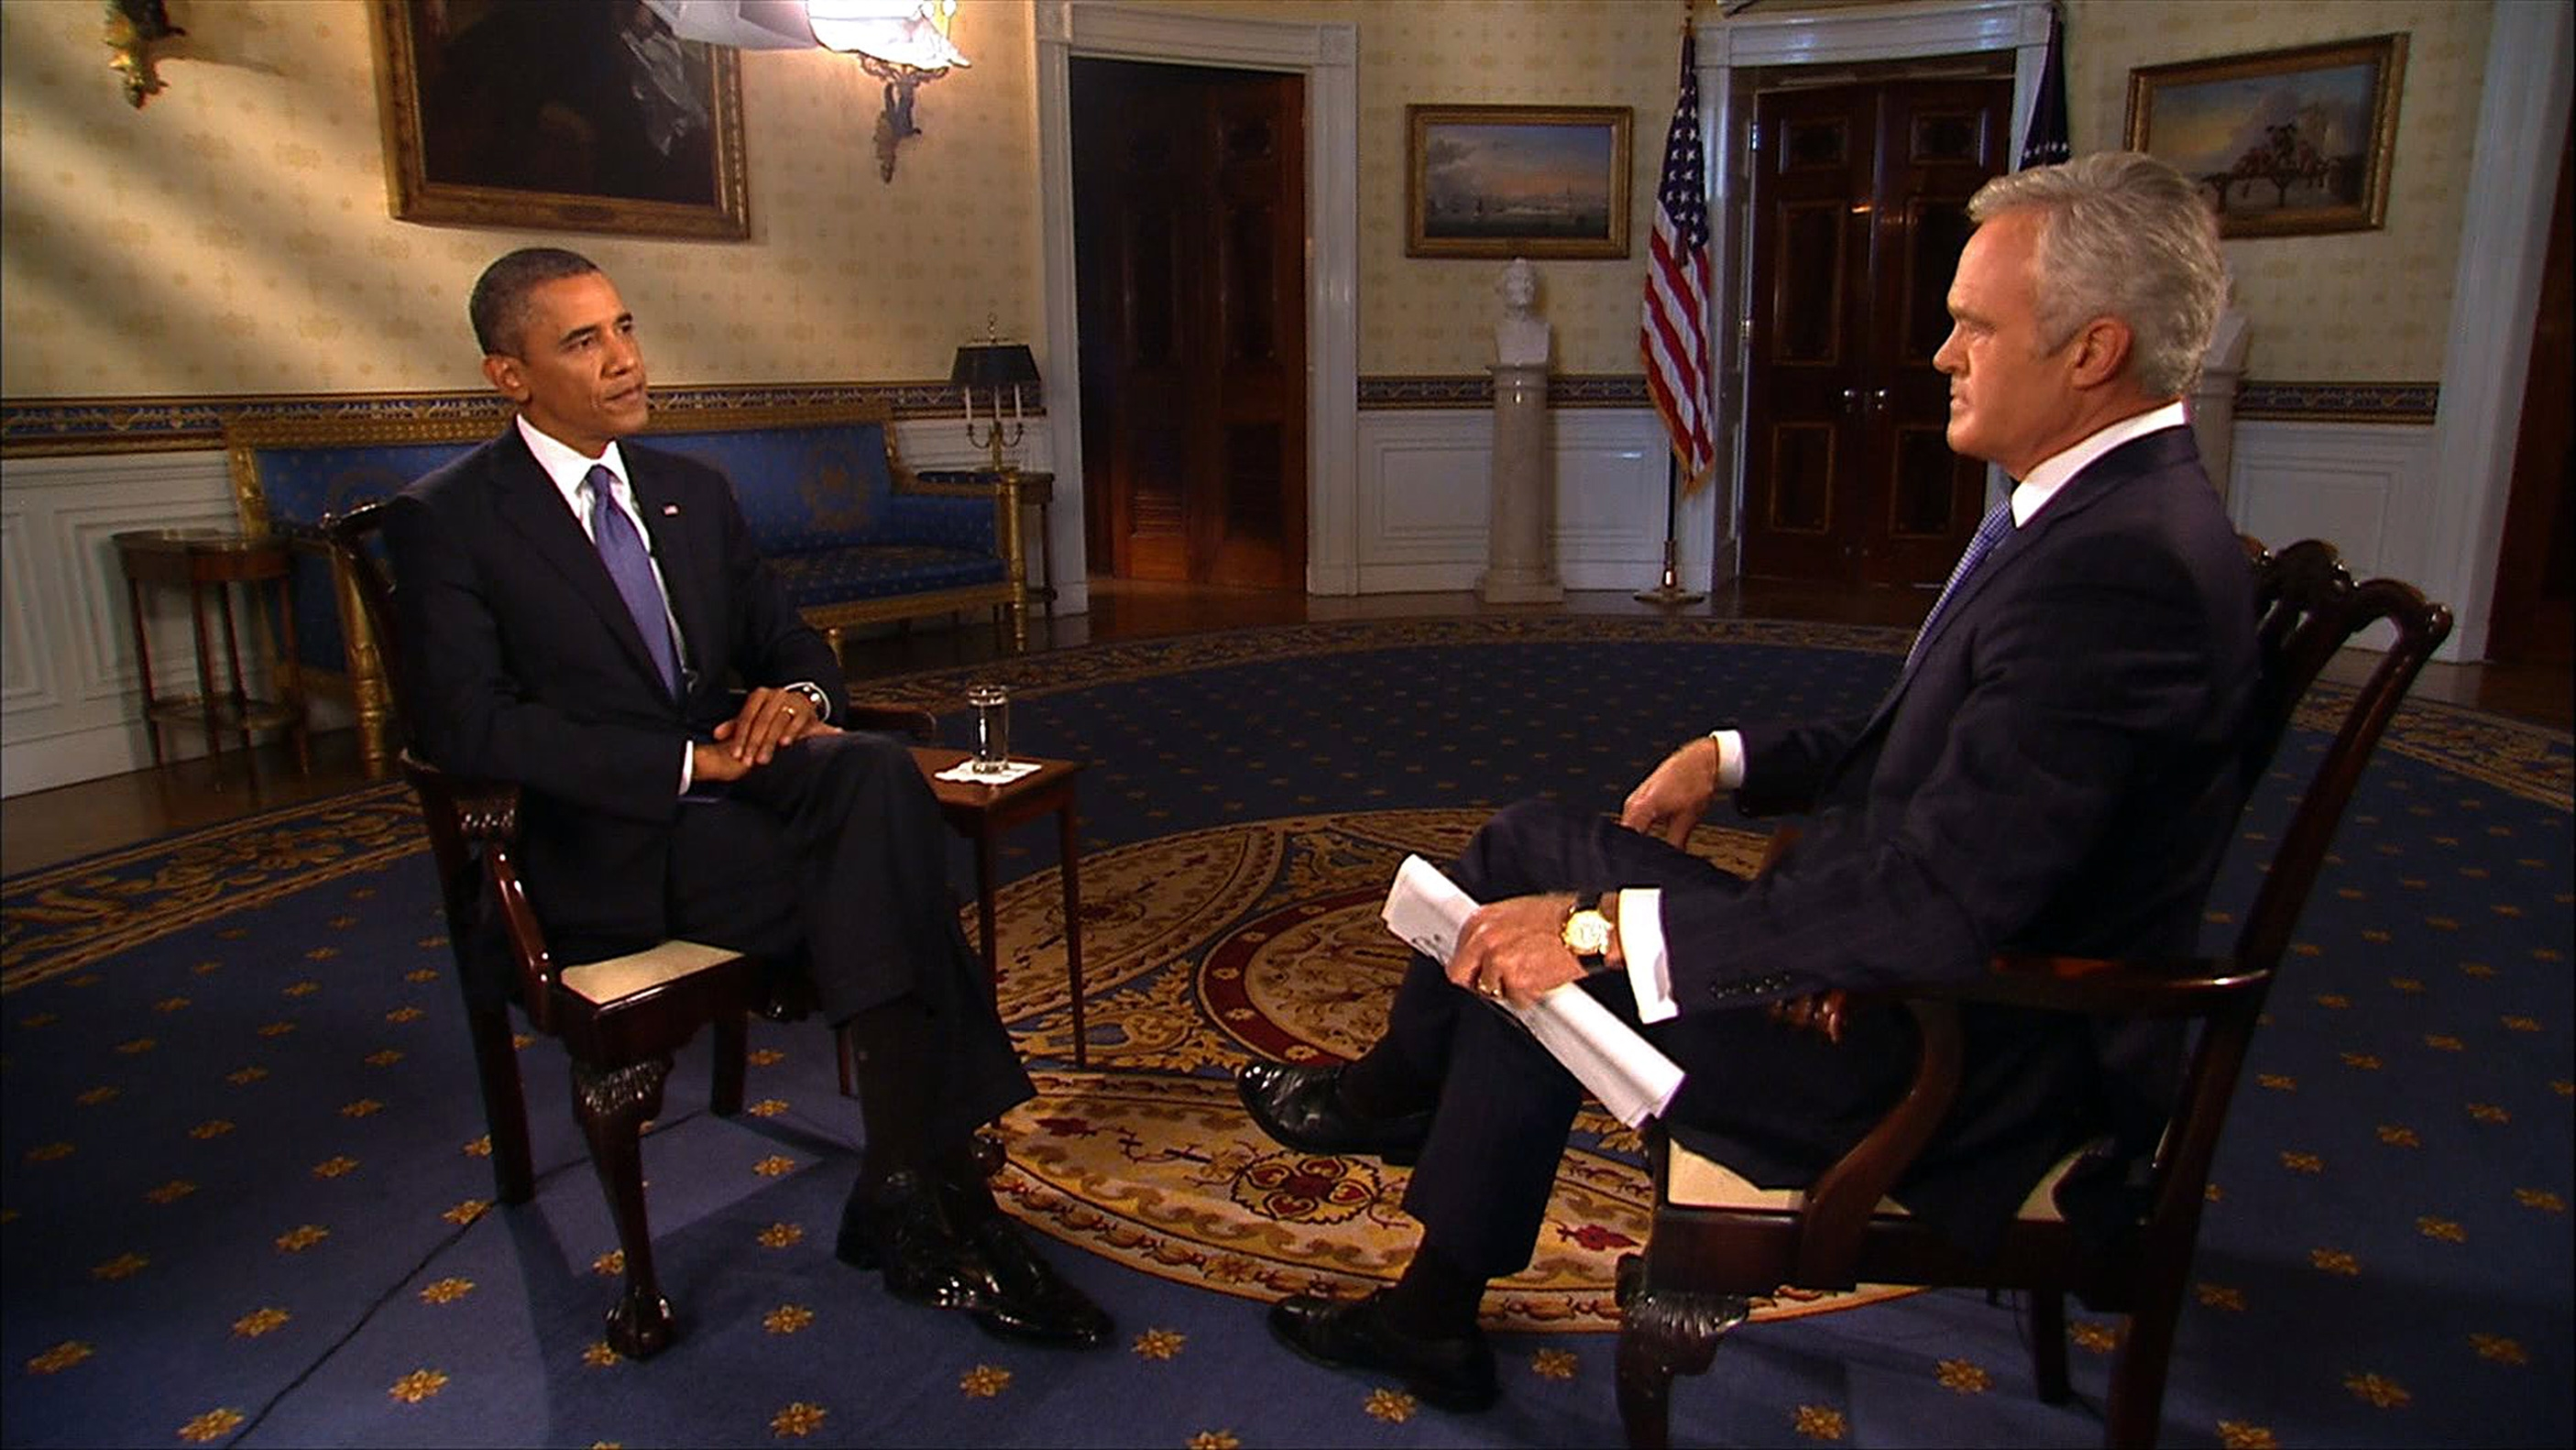 CBS Evening news anchor Scott Pelley interviews President Obama on Monday in the Blue Room of the White House, one of six network interviews he did on a possible U.S. military strike on Syria and a Russian proposal for Syria to surrender its chemical weapons to be destroyed.